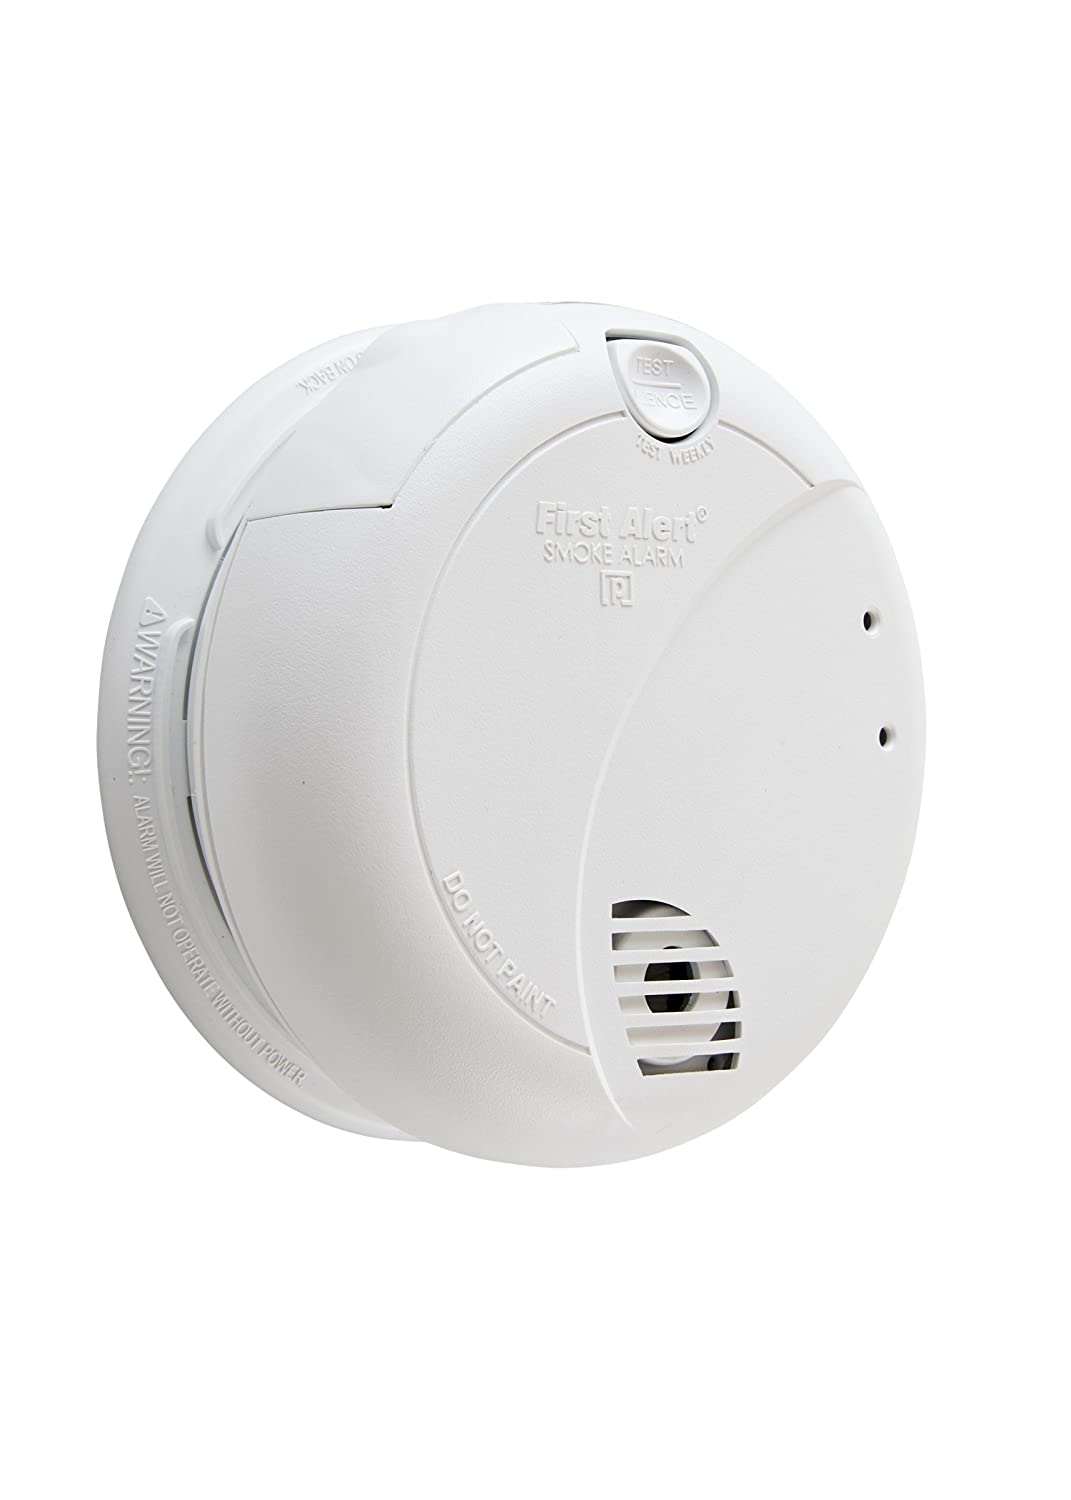 First Alert Brk 7010b Hardwire Smoke Alarm With Photoelectric Sensor Detectors Wiring Diagram And Battery Backup